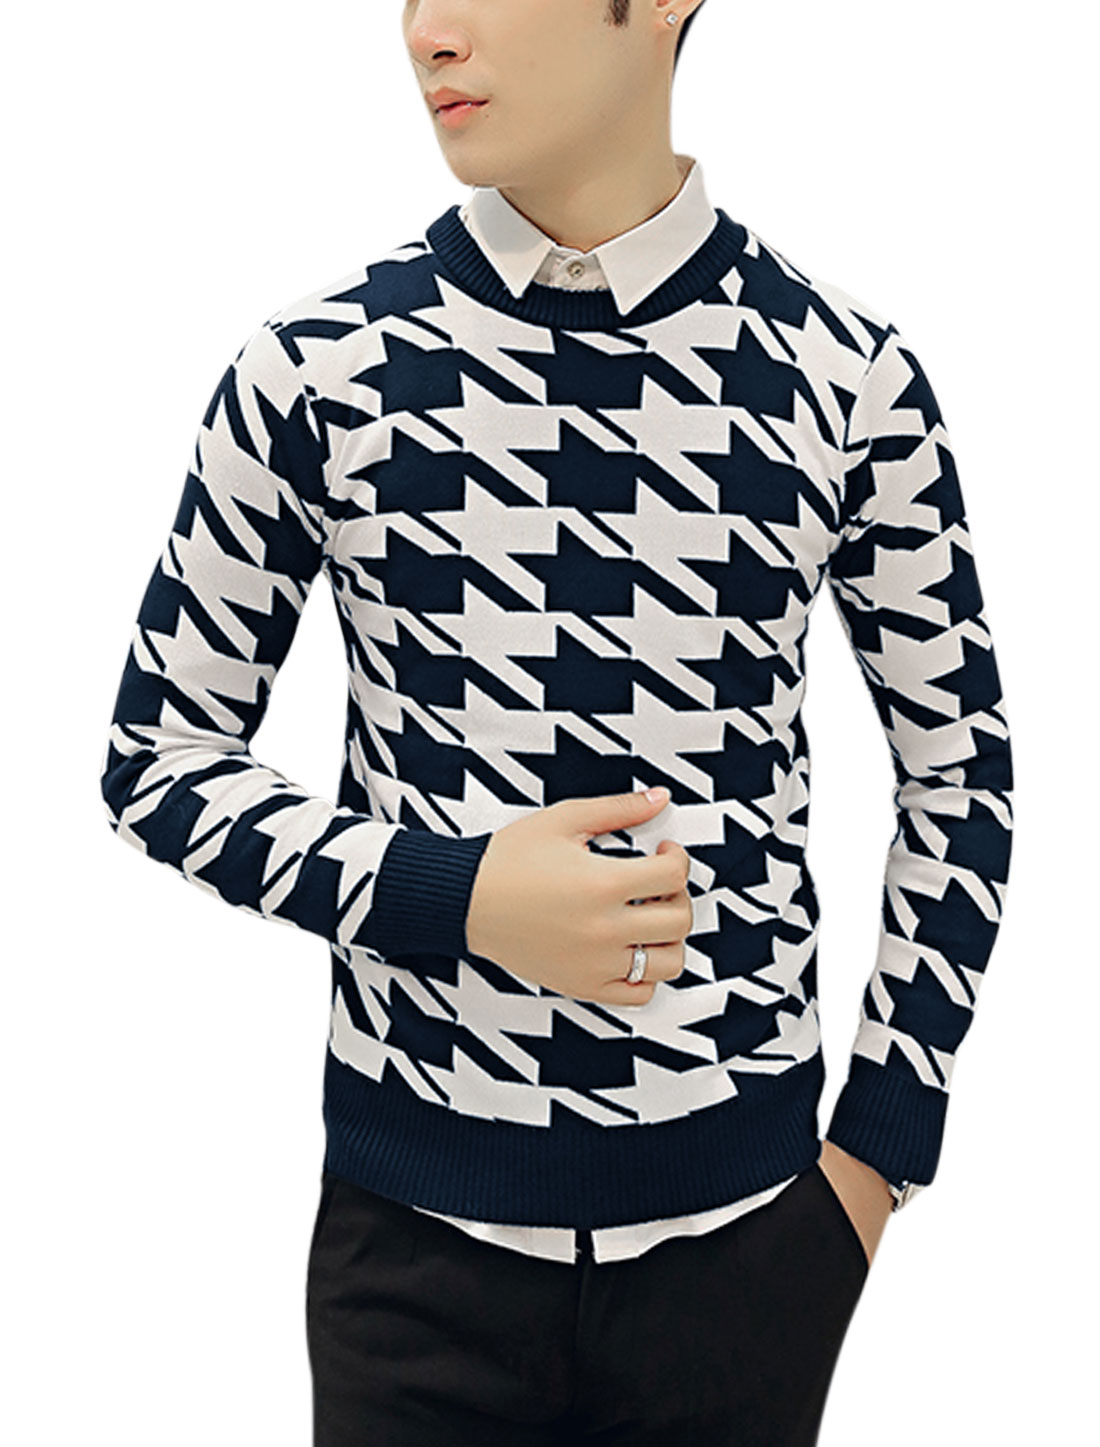 Men Crew Neck Houndstooth Pattern Slim Fit Knit Shirt Navy Blue White S